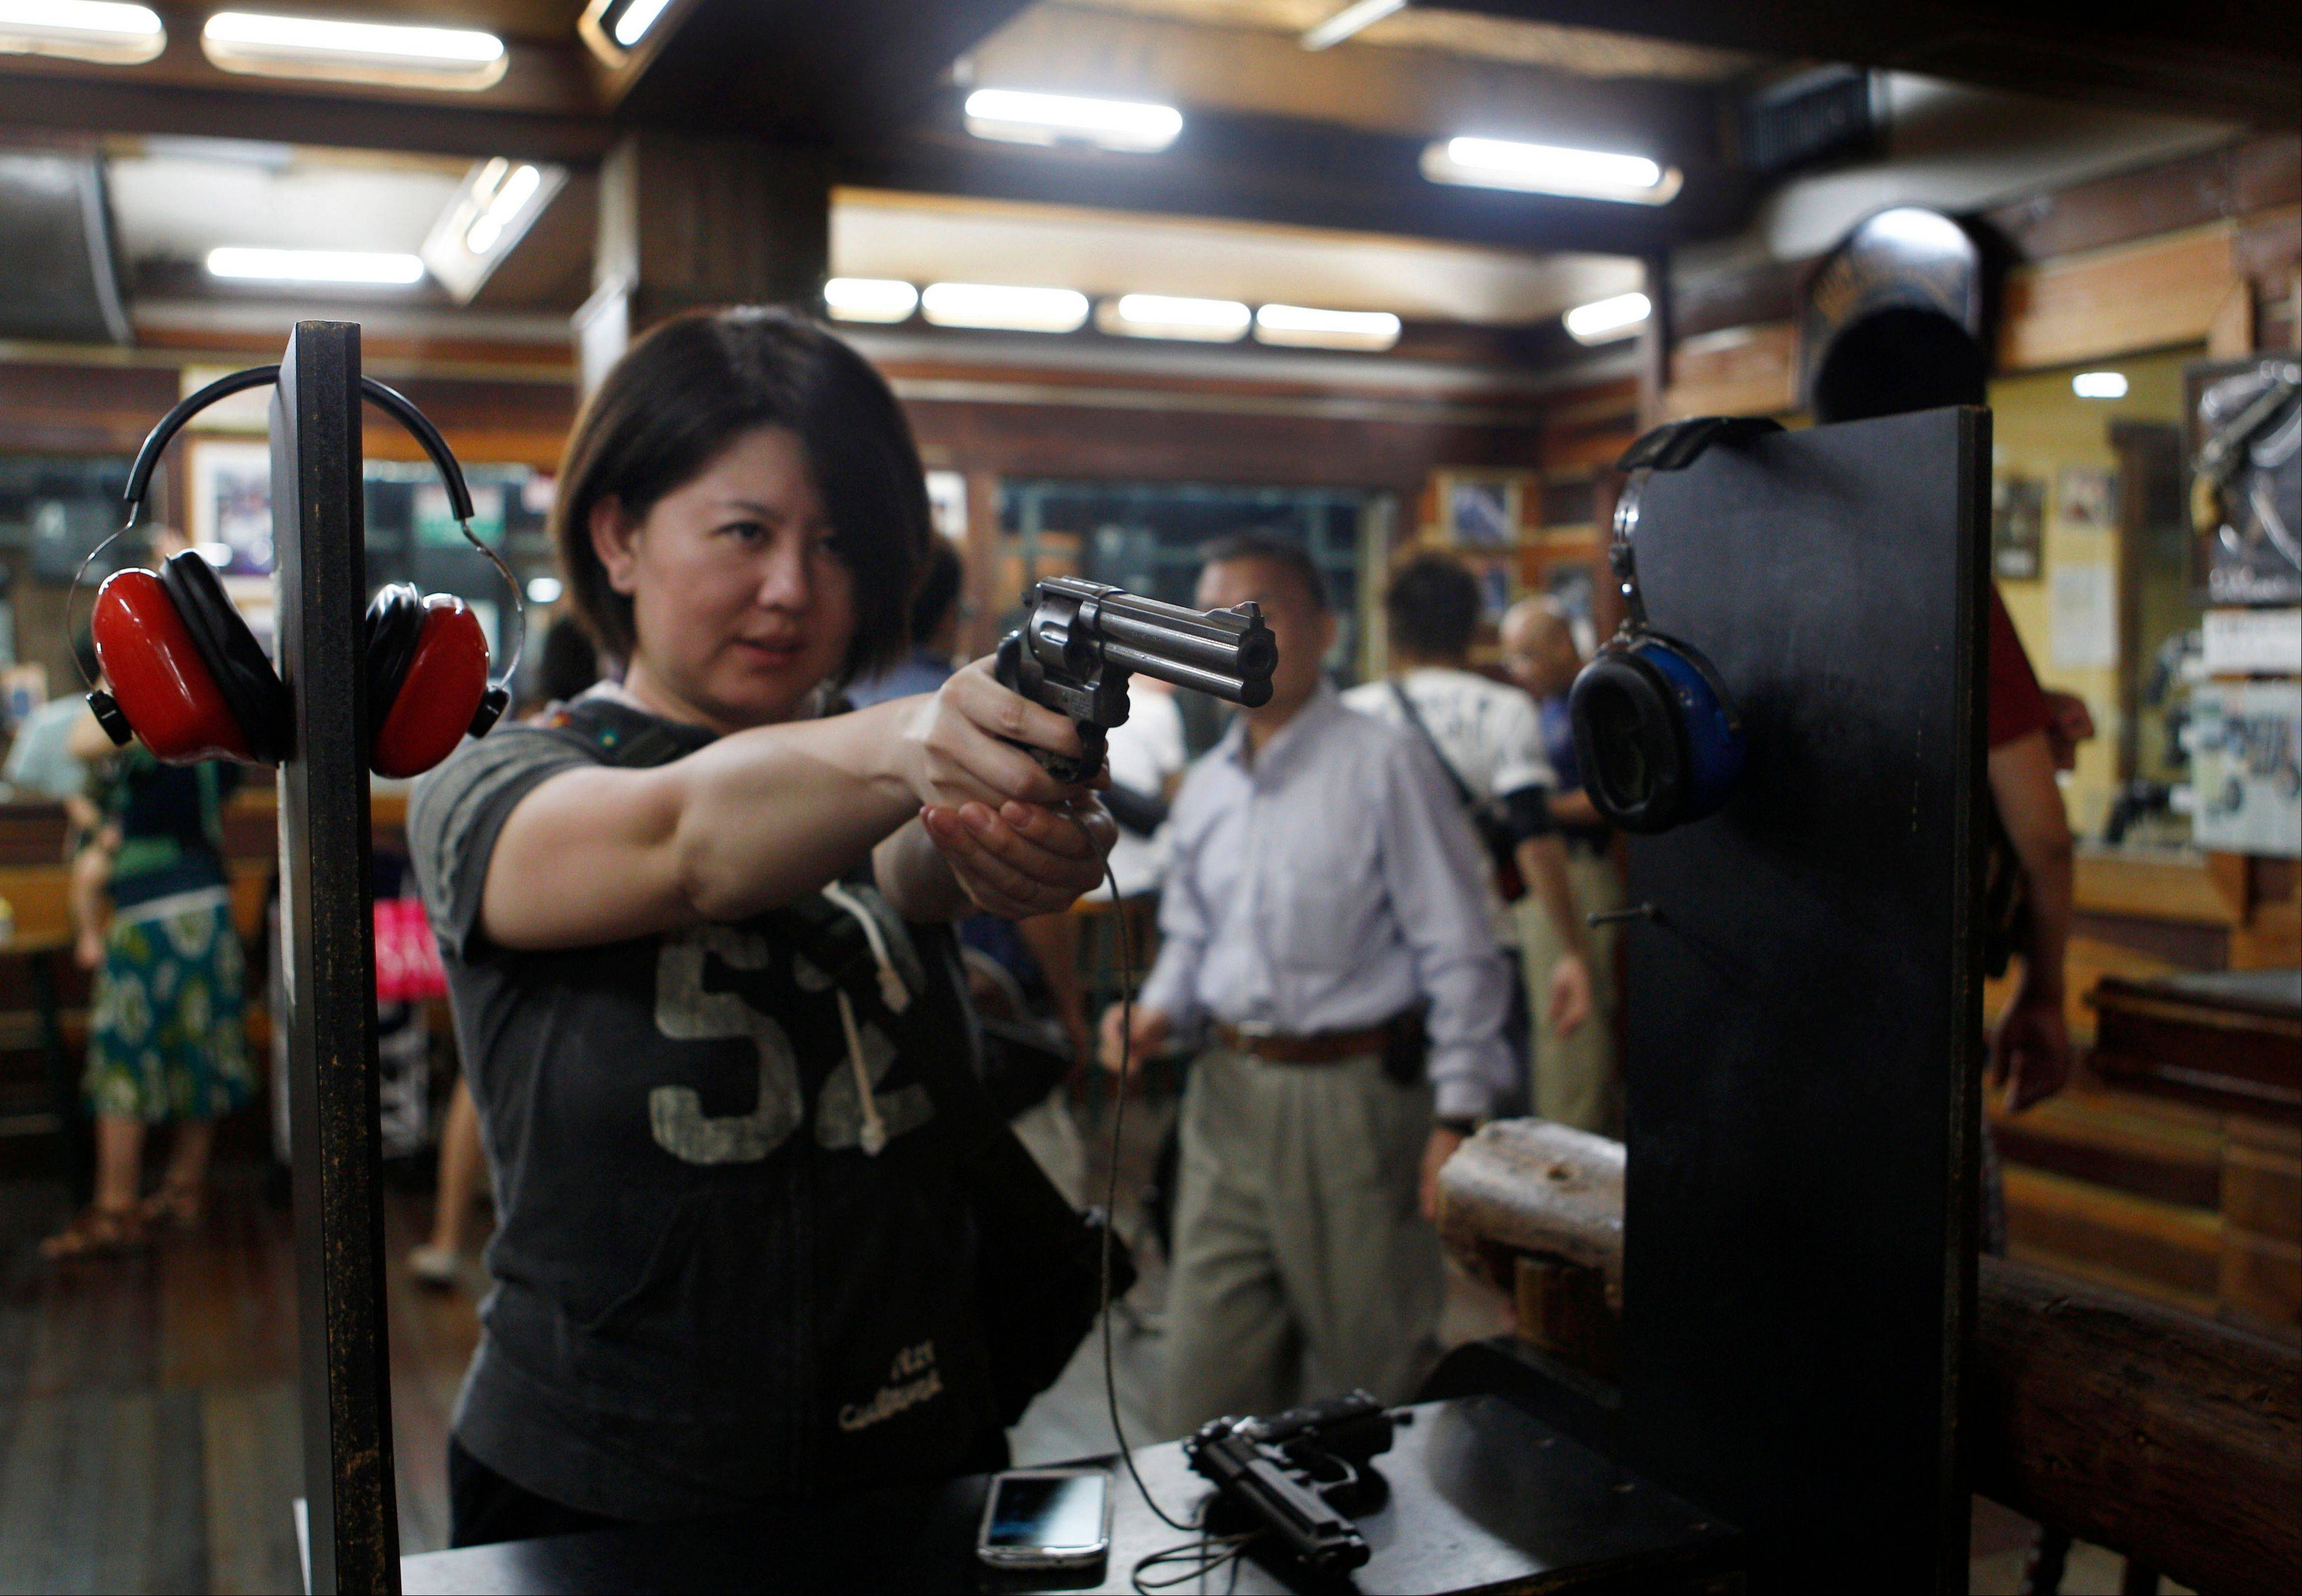 Japanese tourist Natsue Matsumoto, 38, warms up for a round of shooting at the Western Frontier Village range in Tamuning, Guam. Gun tourism is a big attraction on the tiny U.S. territory, drawing thousands of visitors who can't own guns in their own countries.